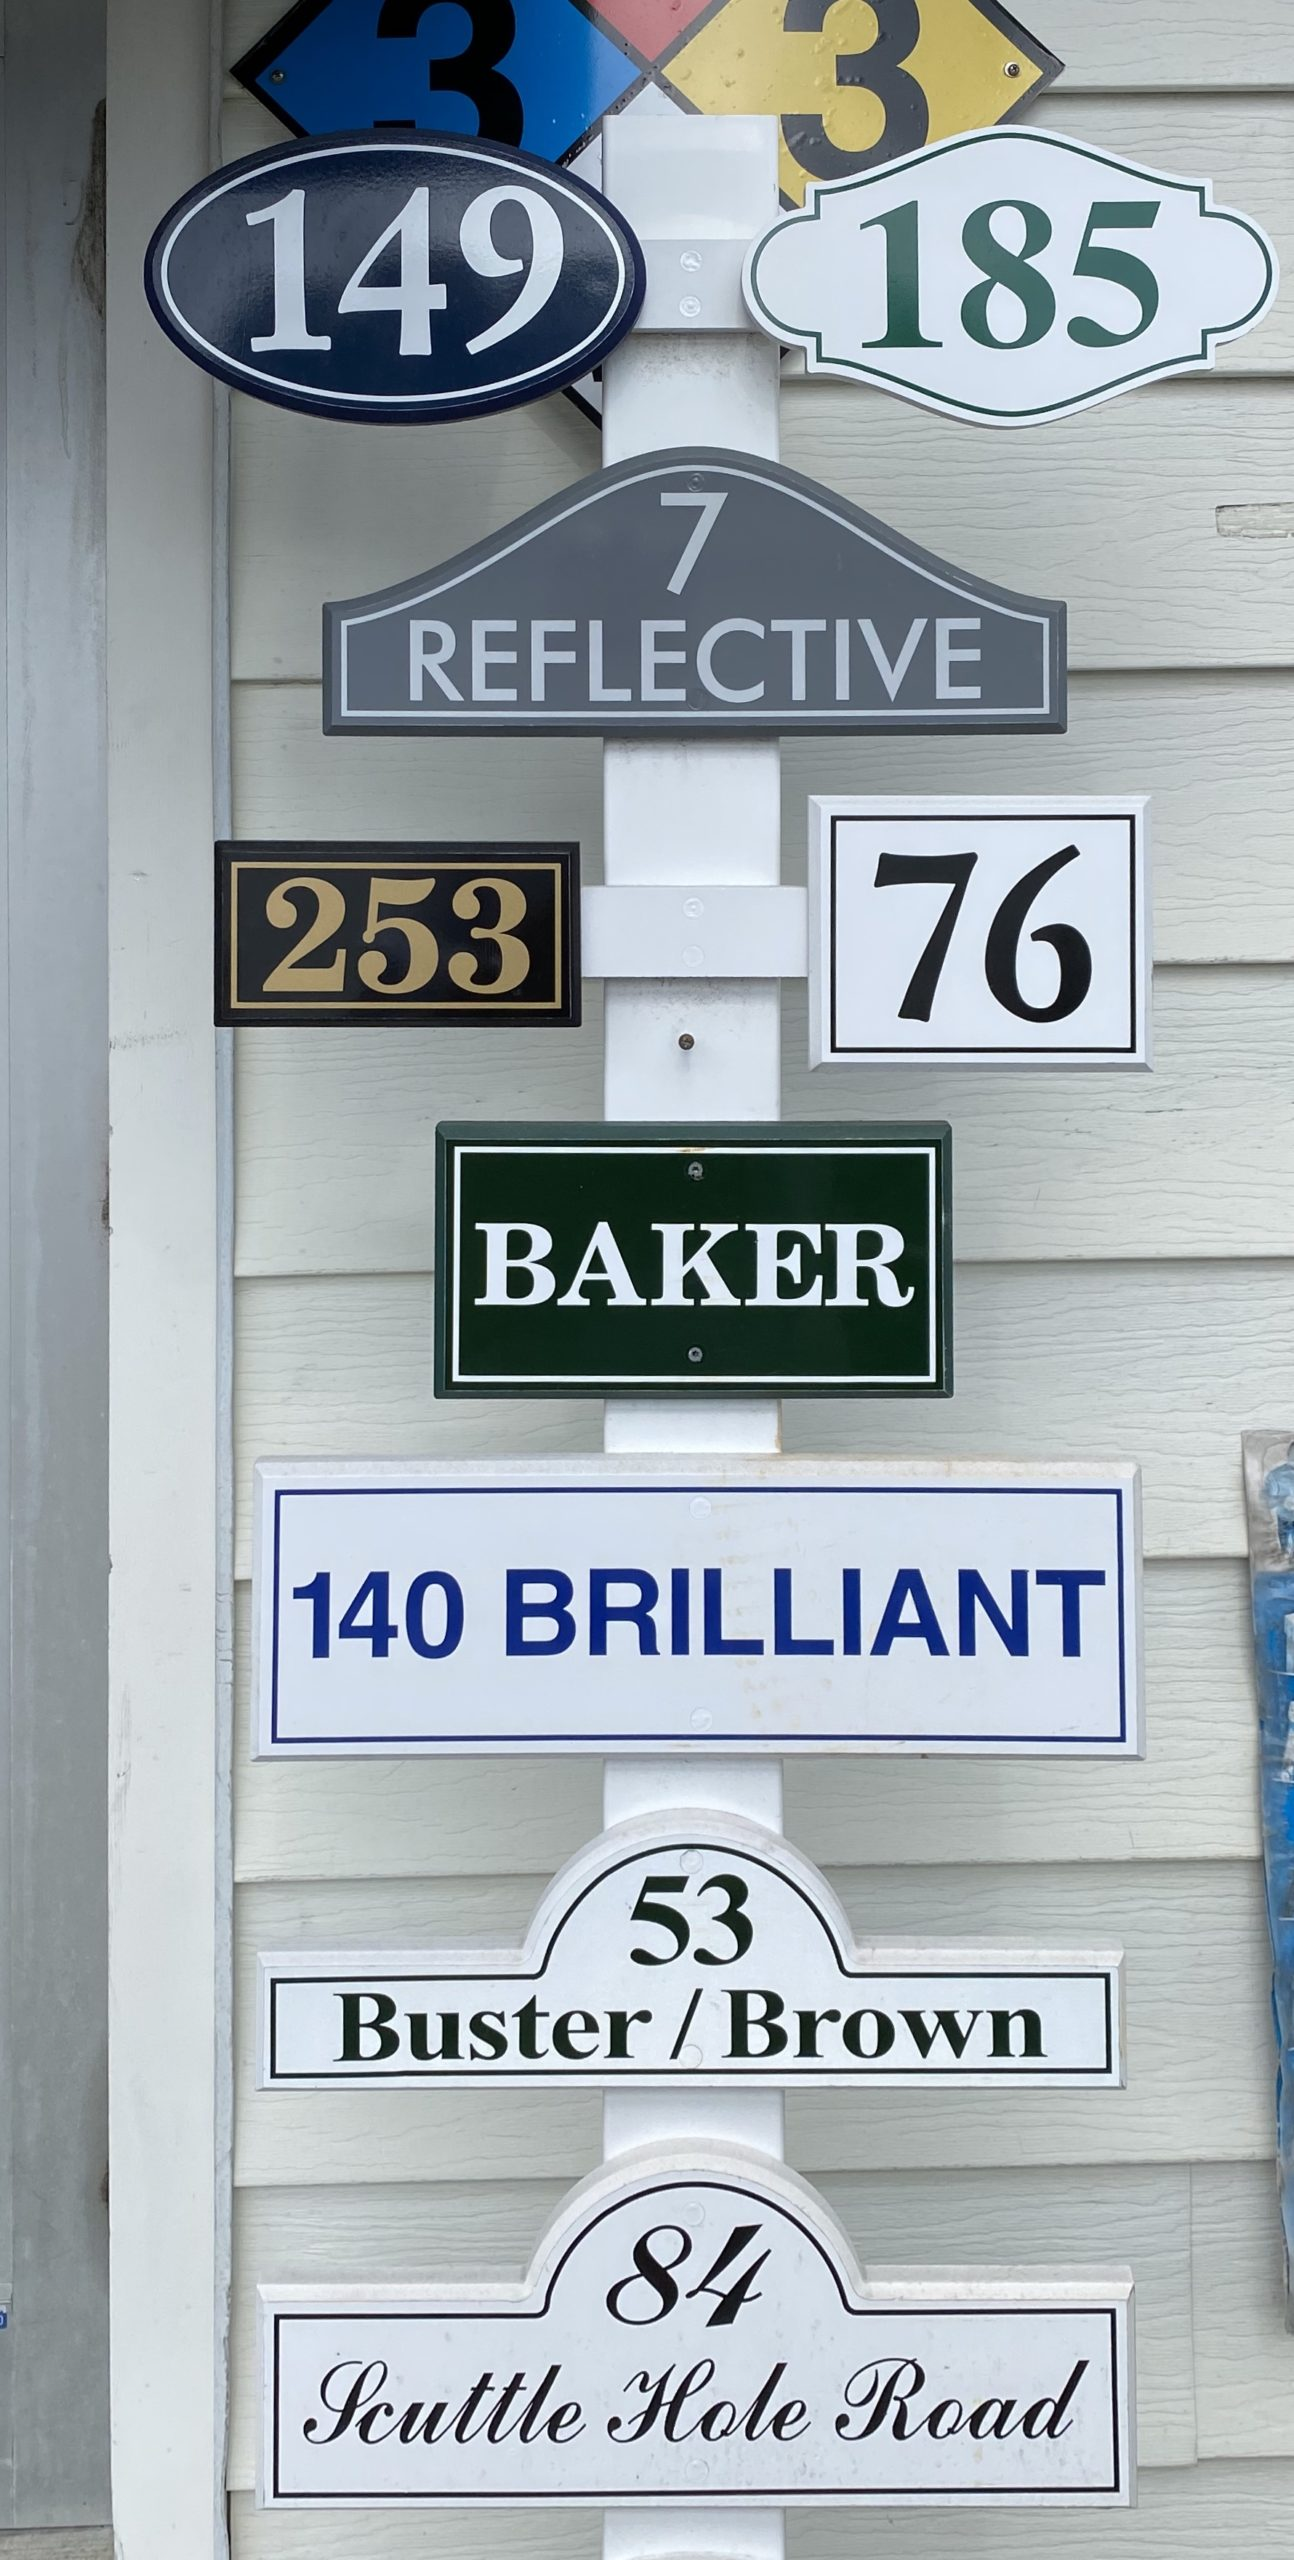 Display of sign styles available at Herrick Hardware on Main Street in Southampton Village.